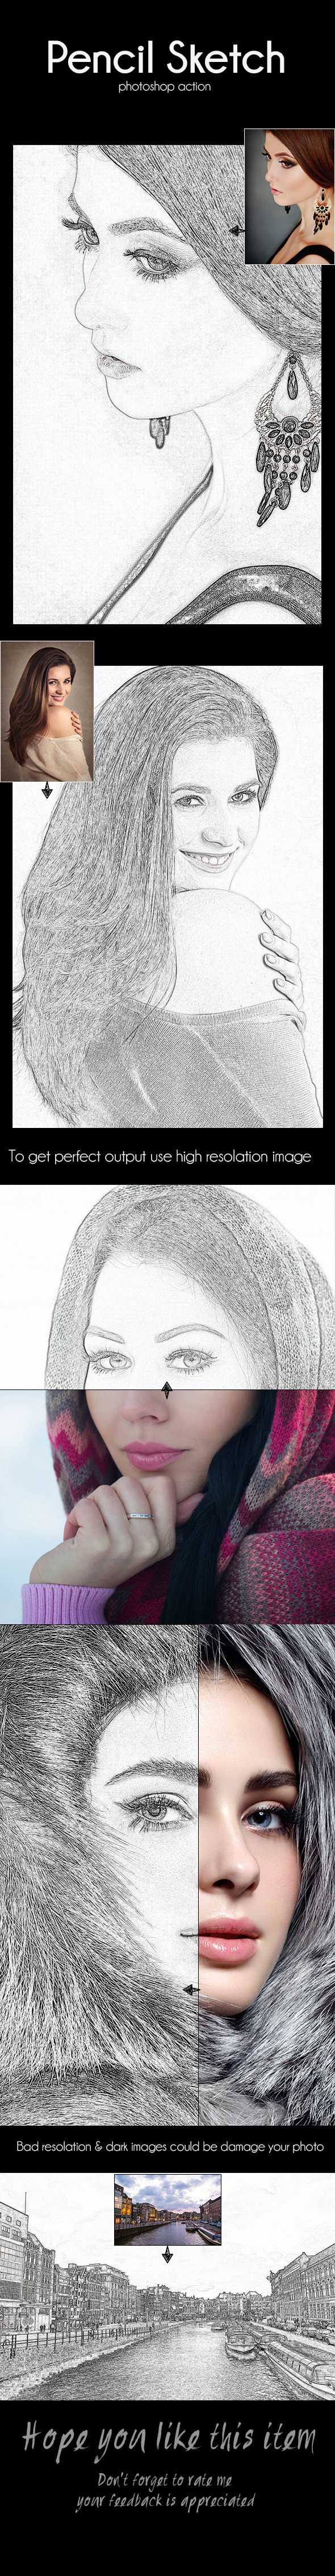 GraphicRiver Pencil Sketch 11425476